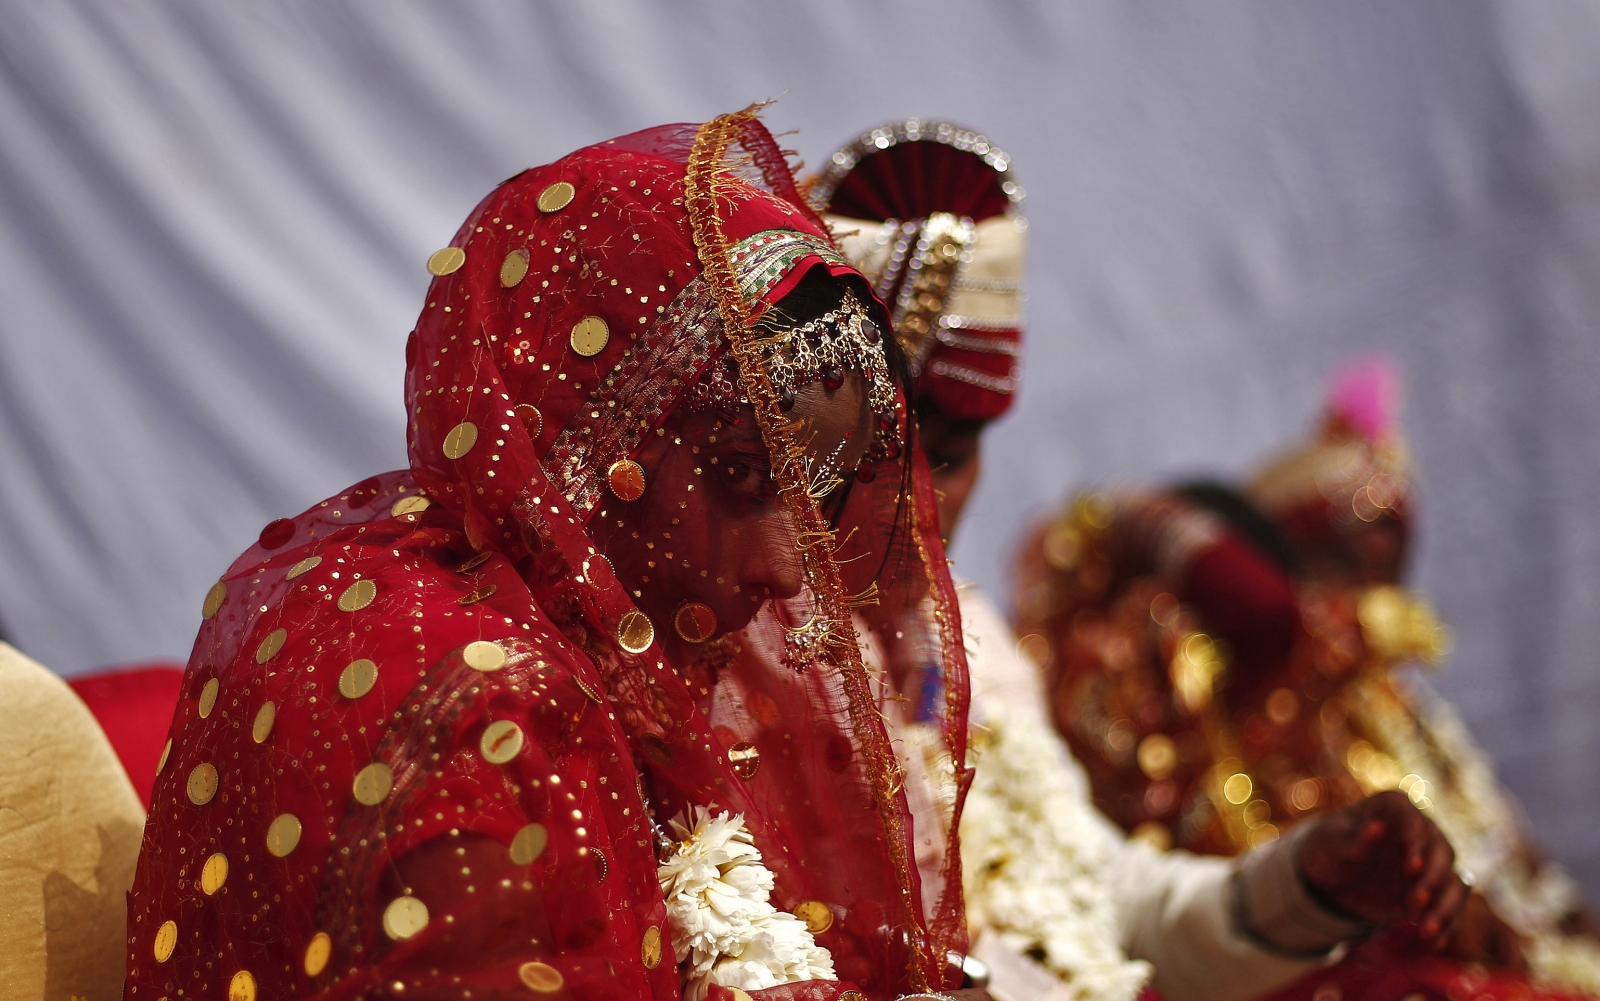 Newly Wed Gets Explosive Gift That Kills Groom Leaves Bride In